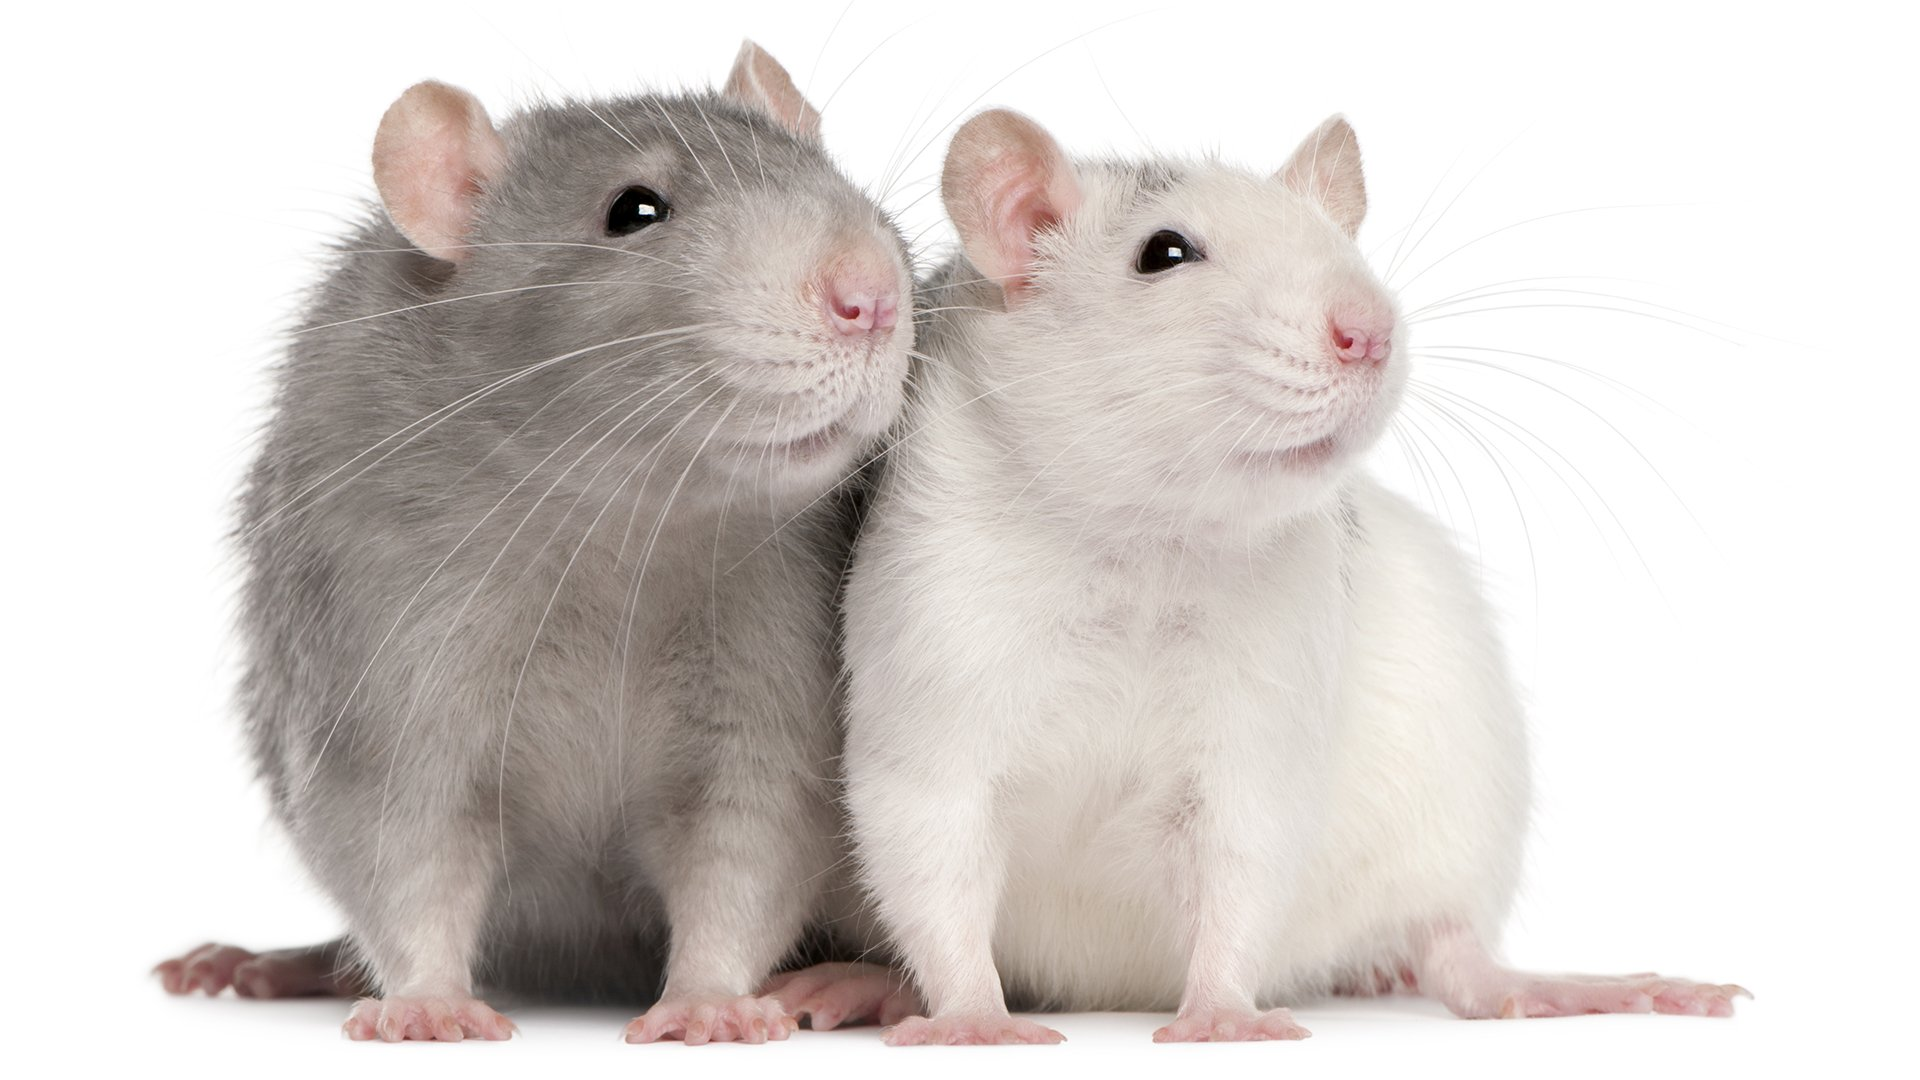 Two grey and white rats